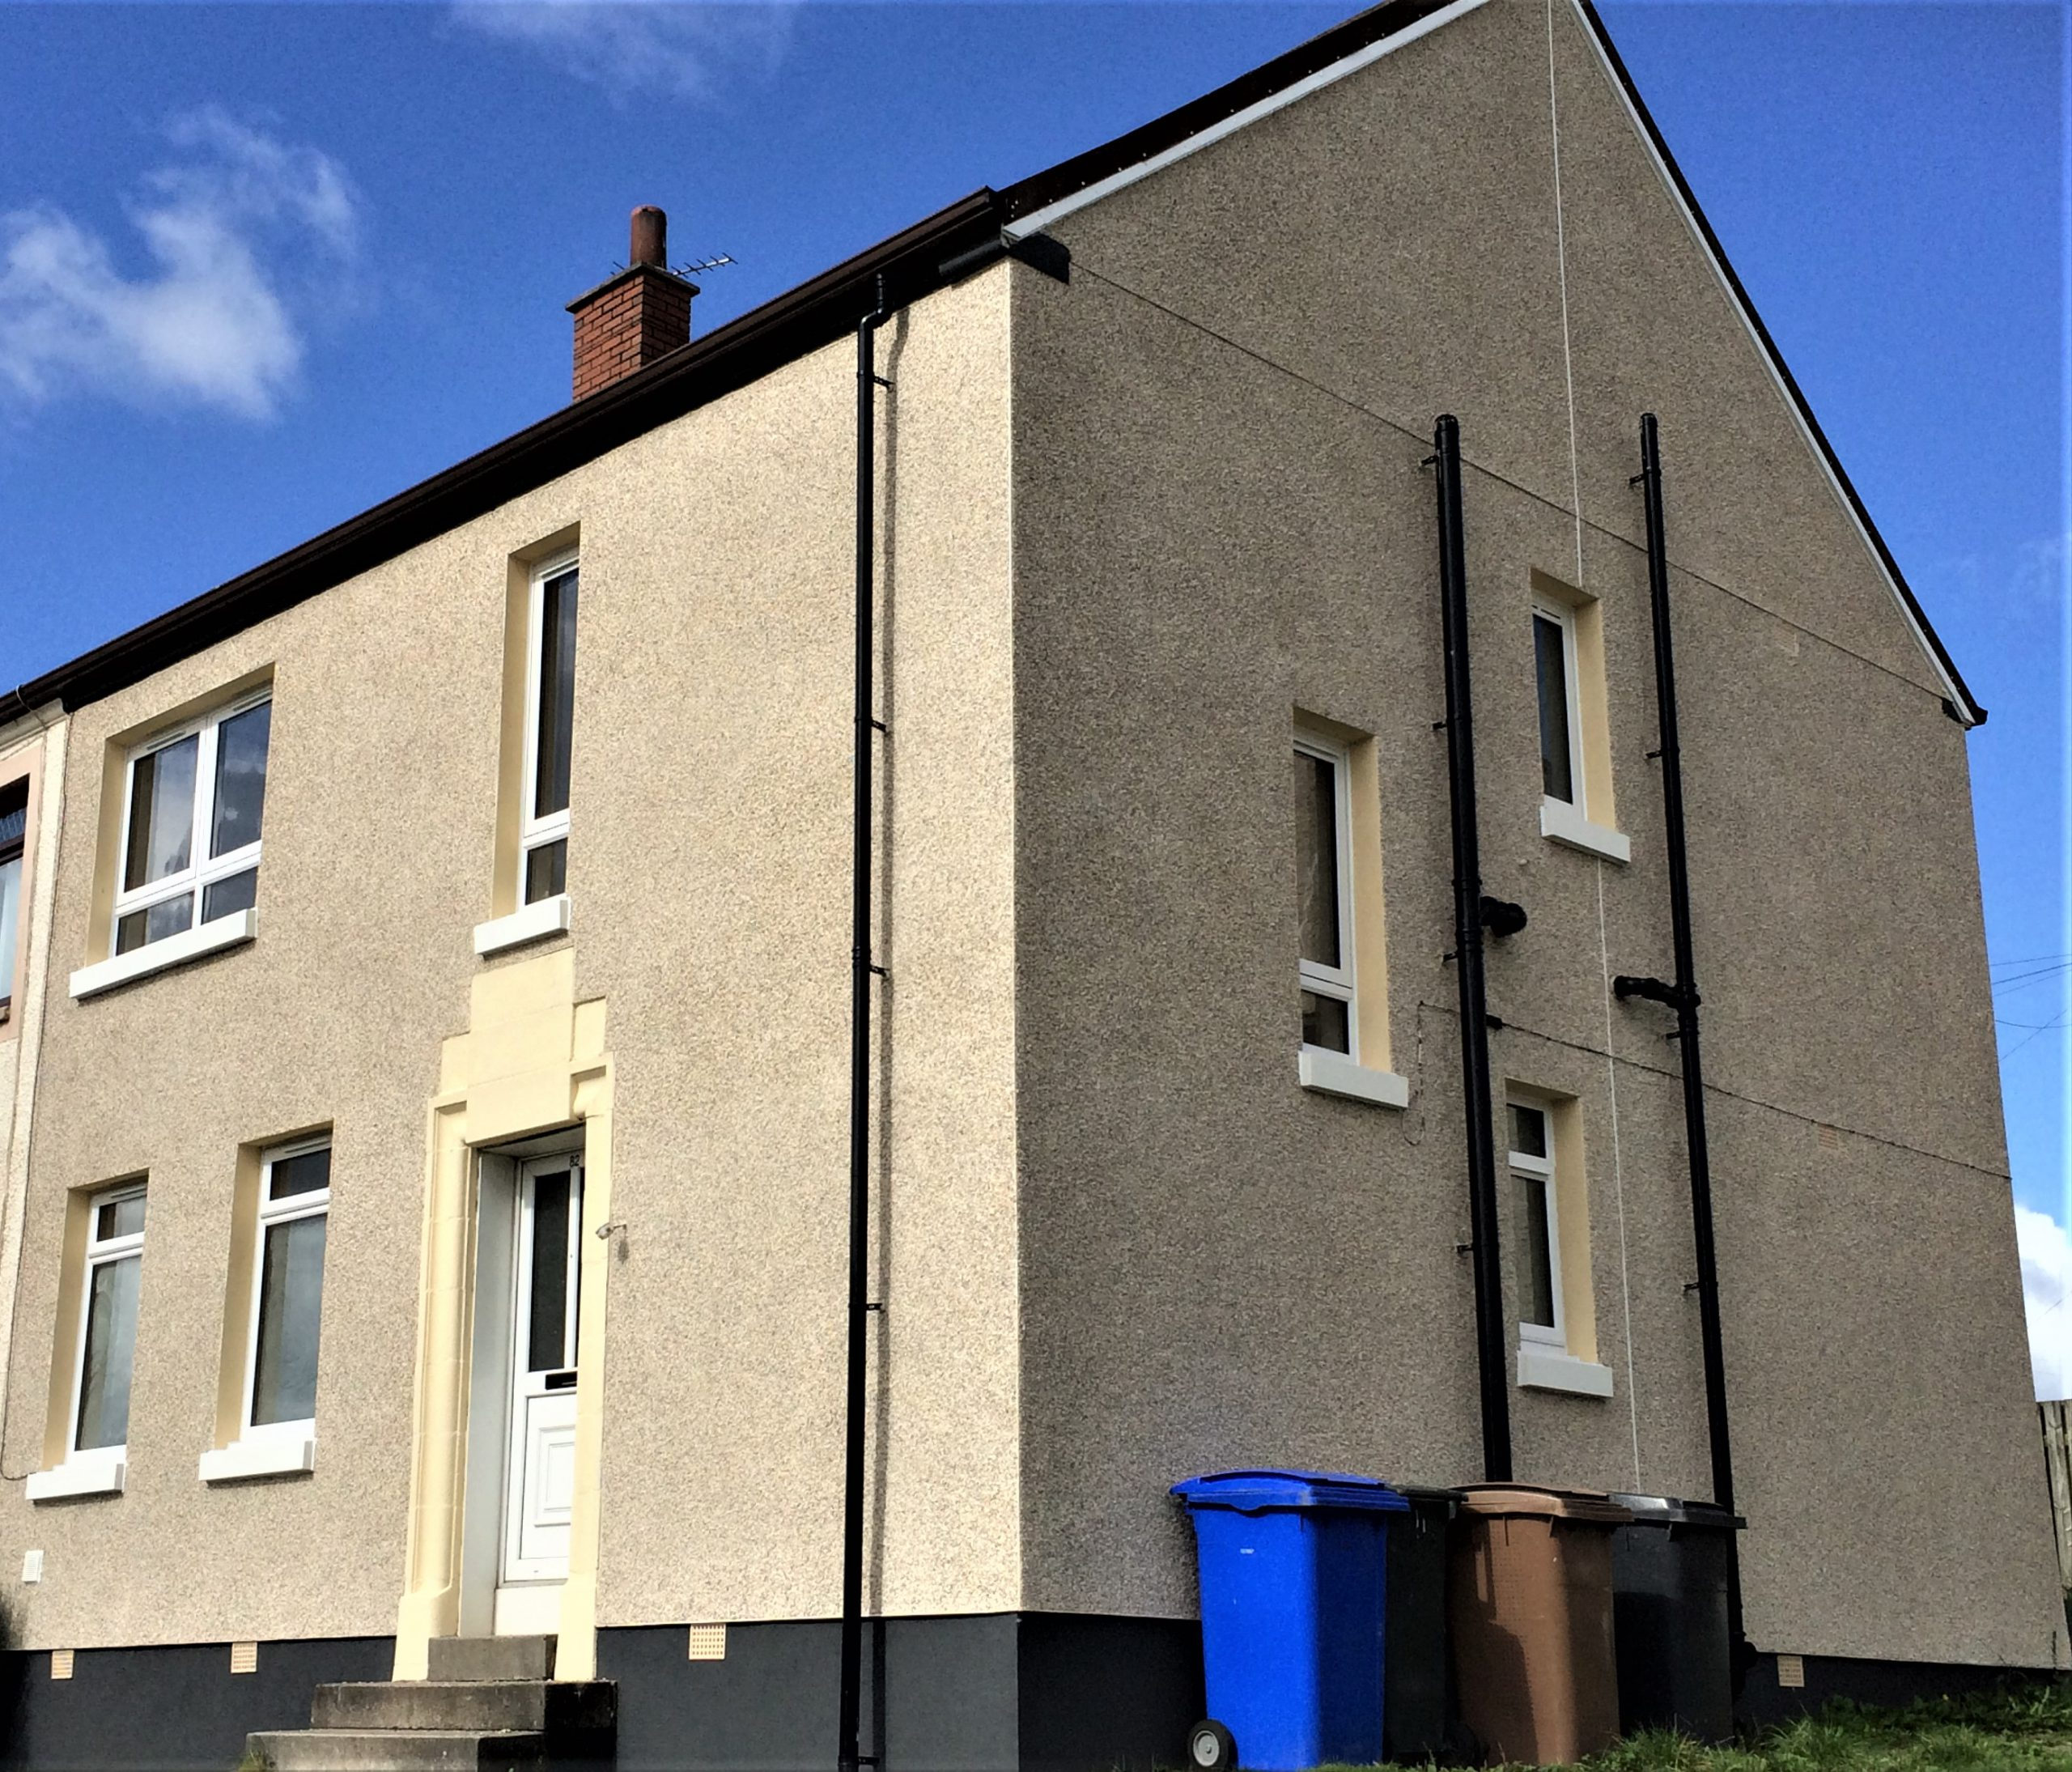 roughcast-render-Edinburgh-dry-dash-Edinburgh